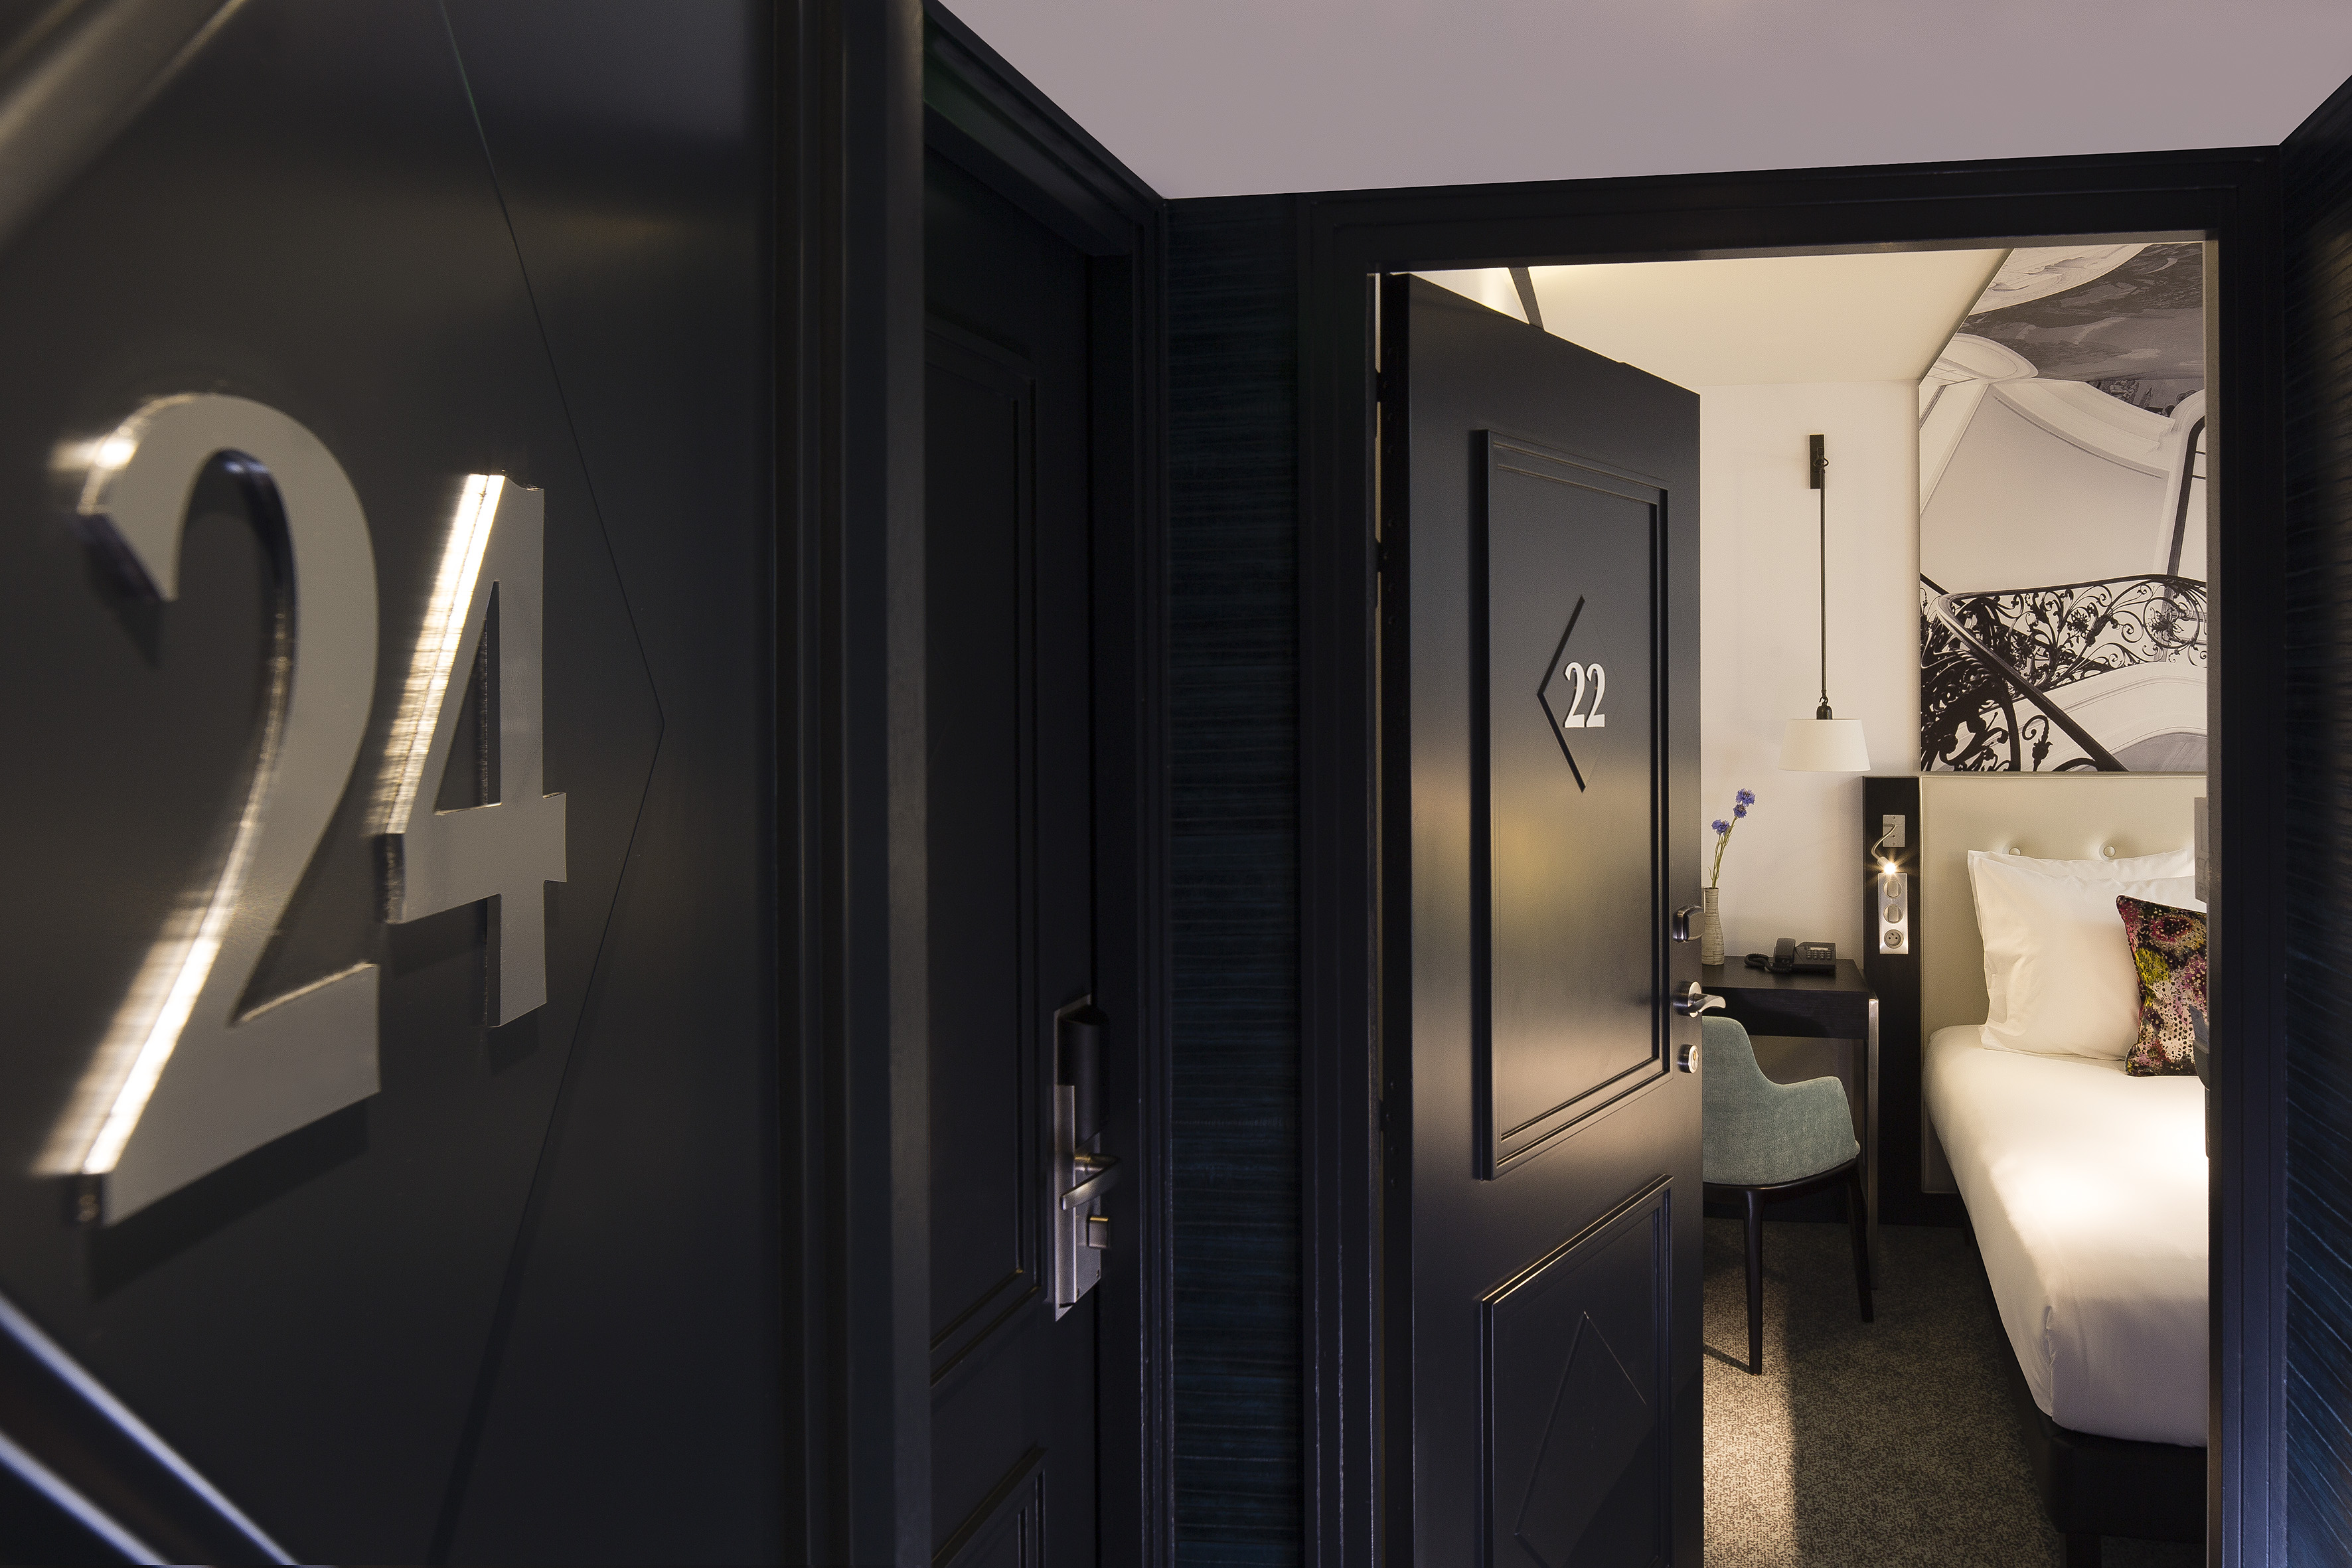 723/Gustave/chambre_/Comm/HOTEL_GUSTAVE_-_Communicantes_-_2.jpg